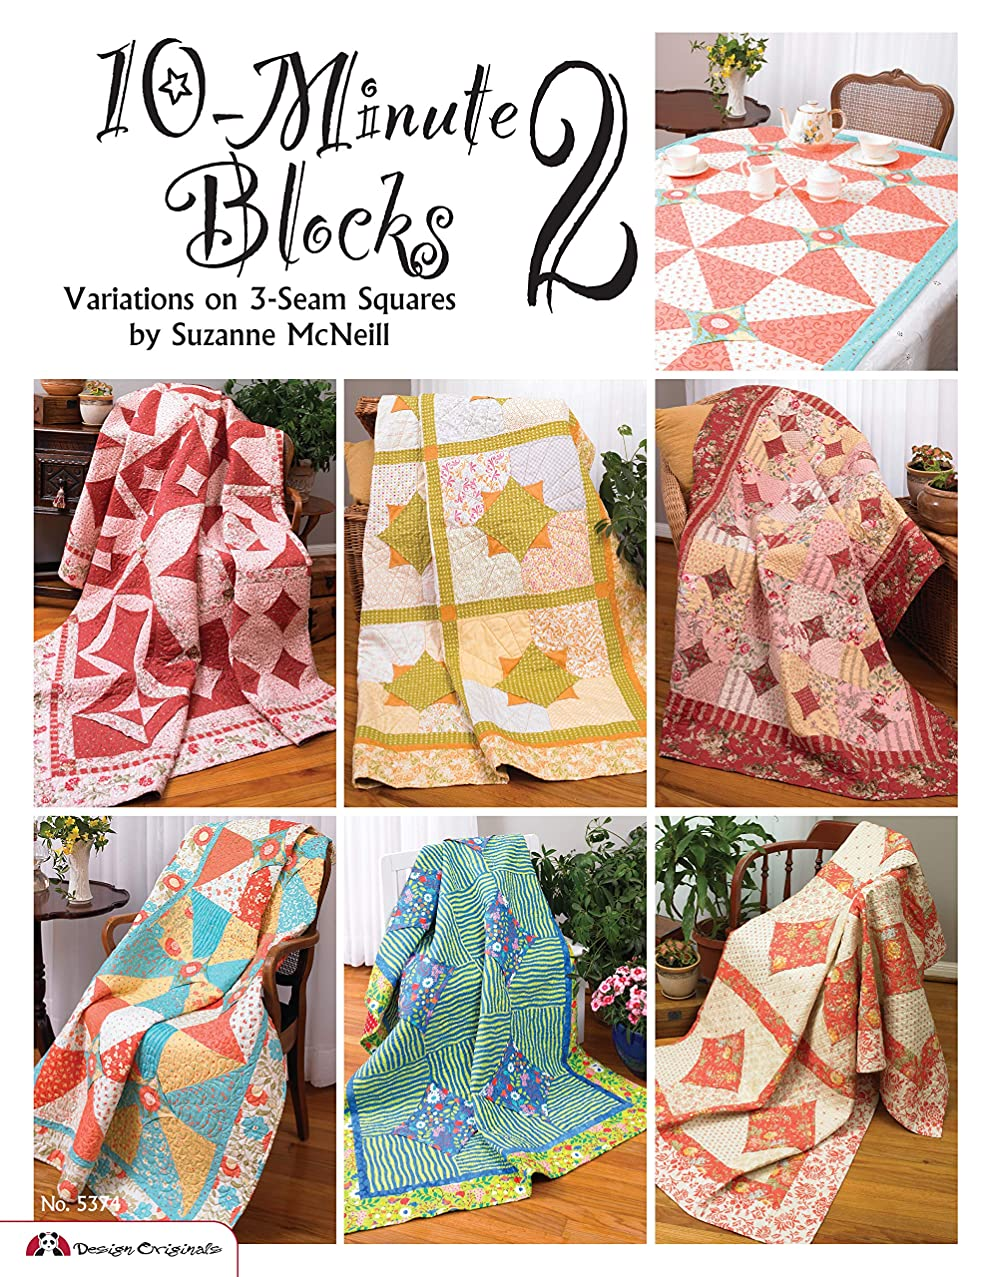 10-Minute Blocks 2: Variations on 3-Seam Squares